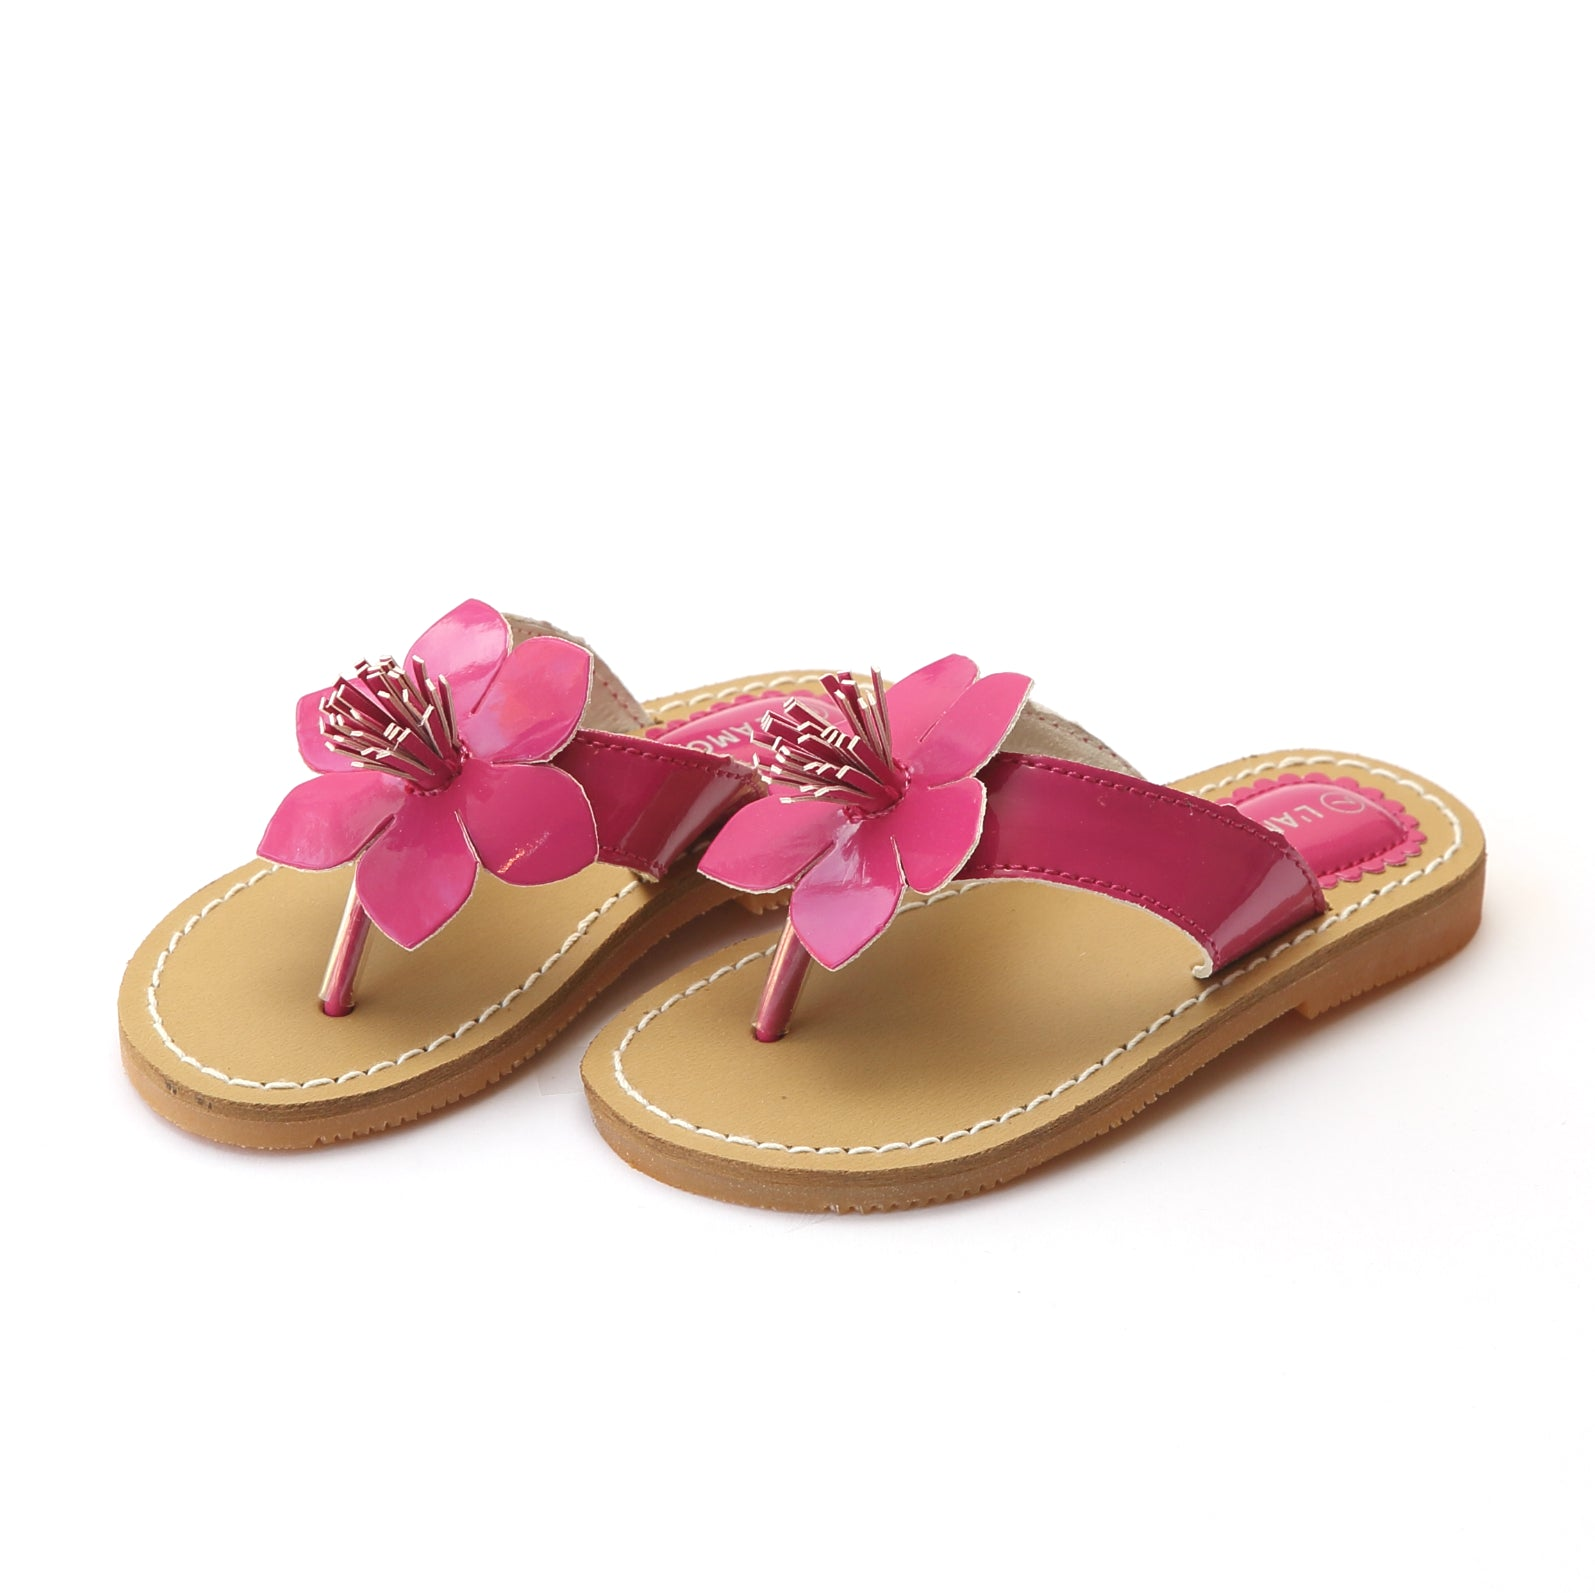 64e0f9cc75cff2 L Amour Girls Kennedy Patent Flower Thong Sandal – L Amour Shoes